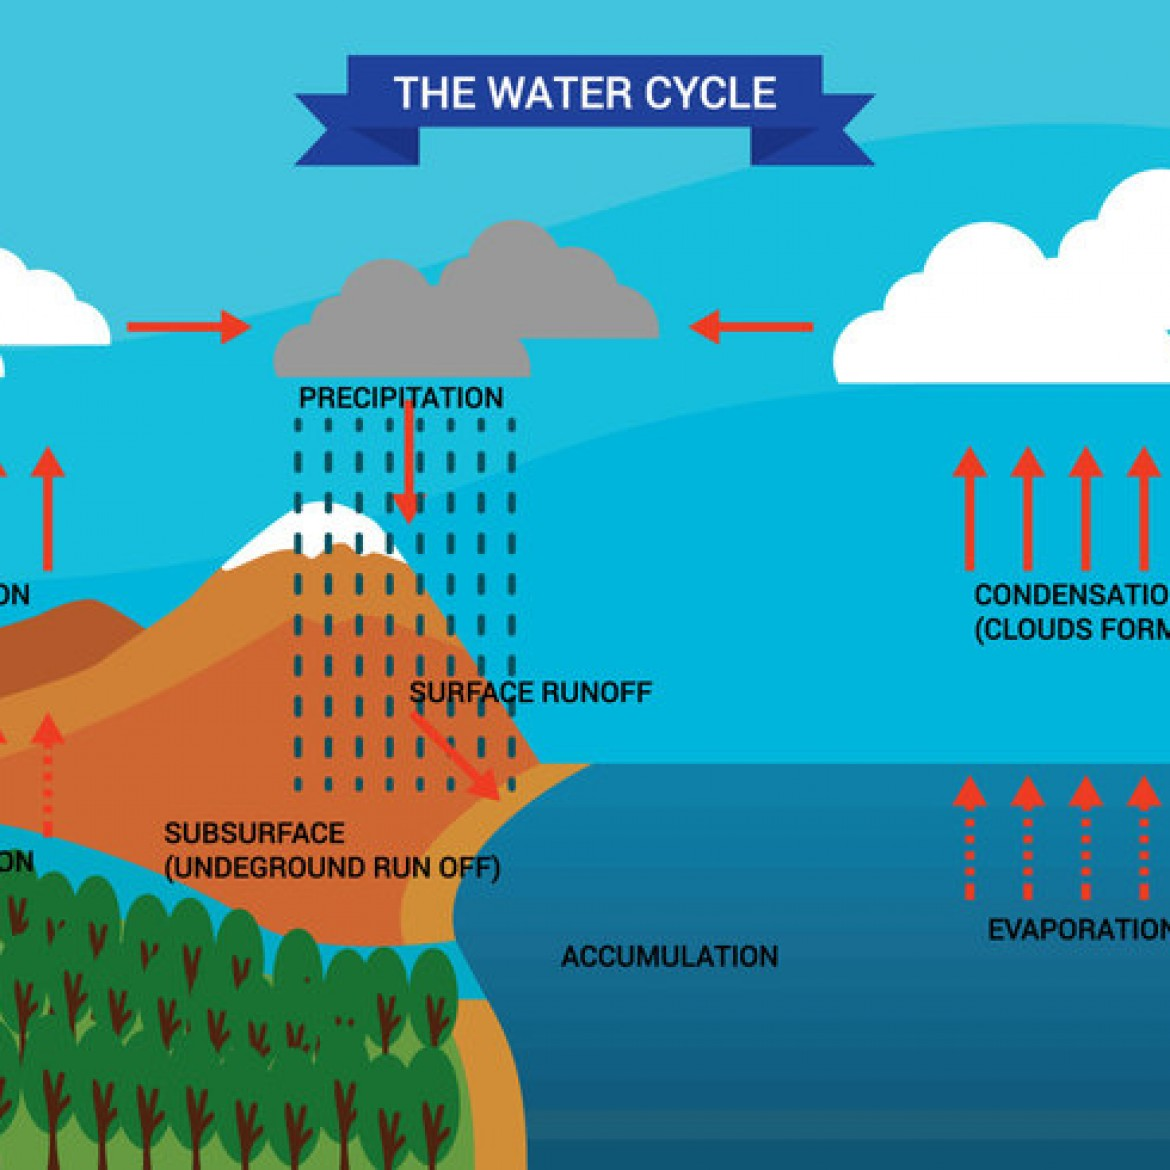 water cycle diagram with explanation 2004 honda civic ac wiring free vector 30682 my graphic